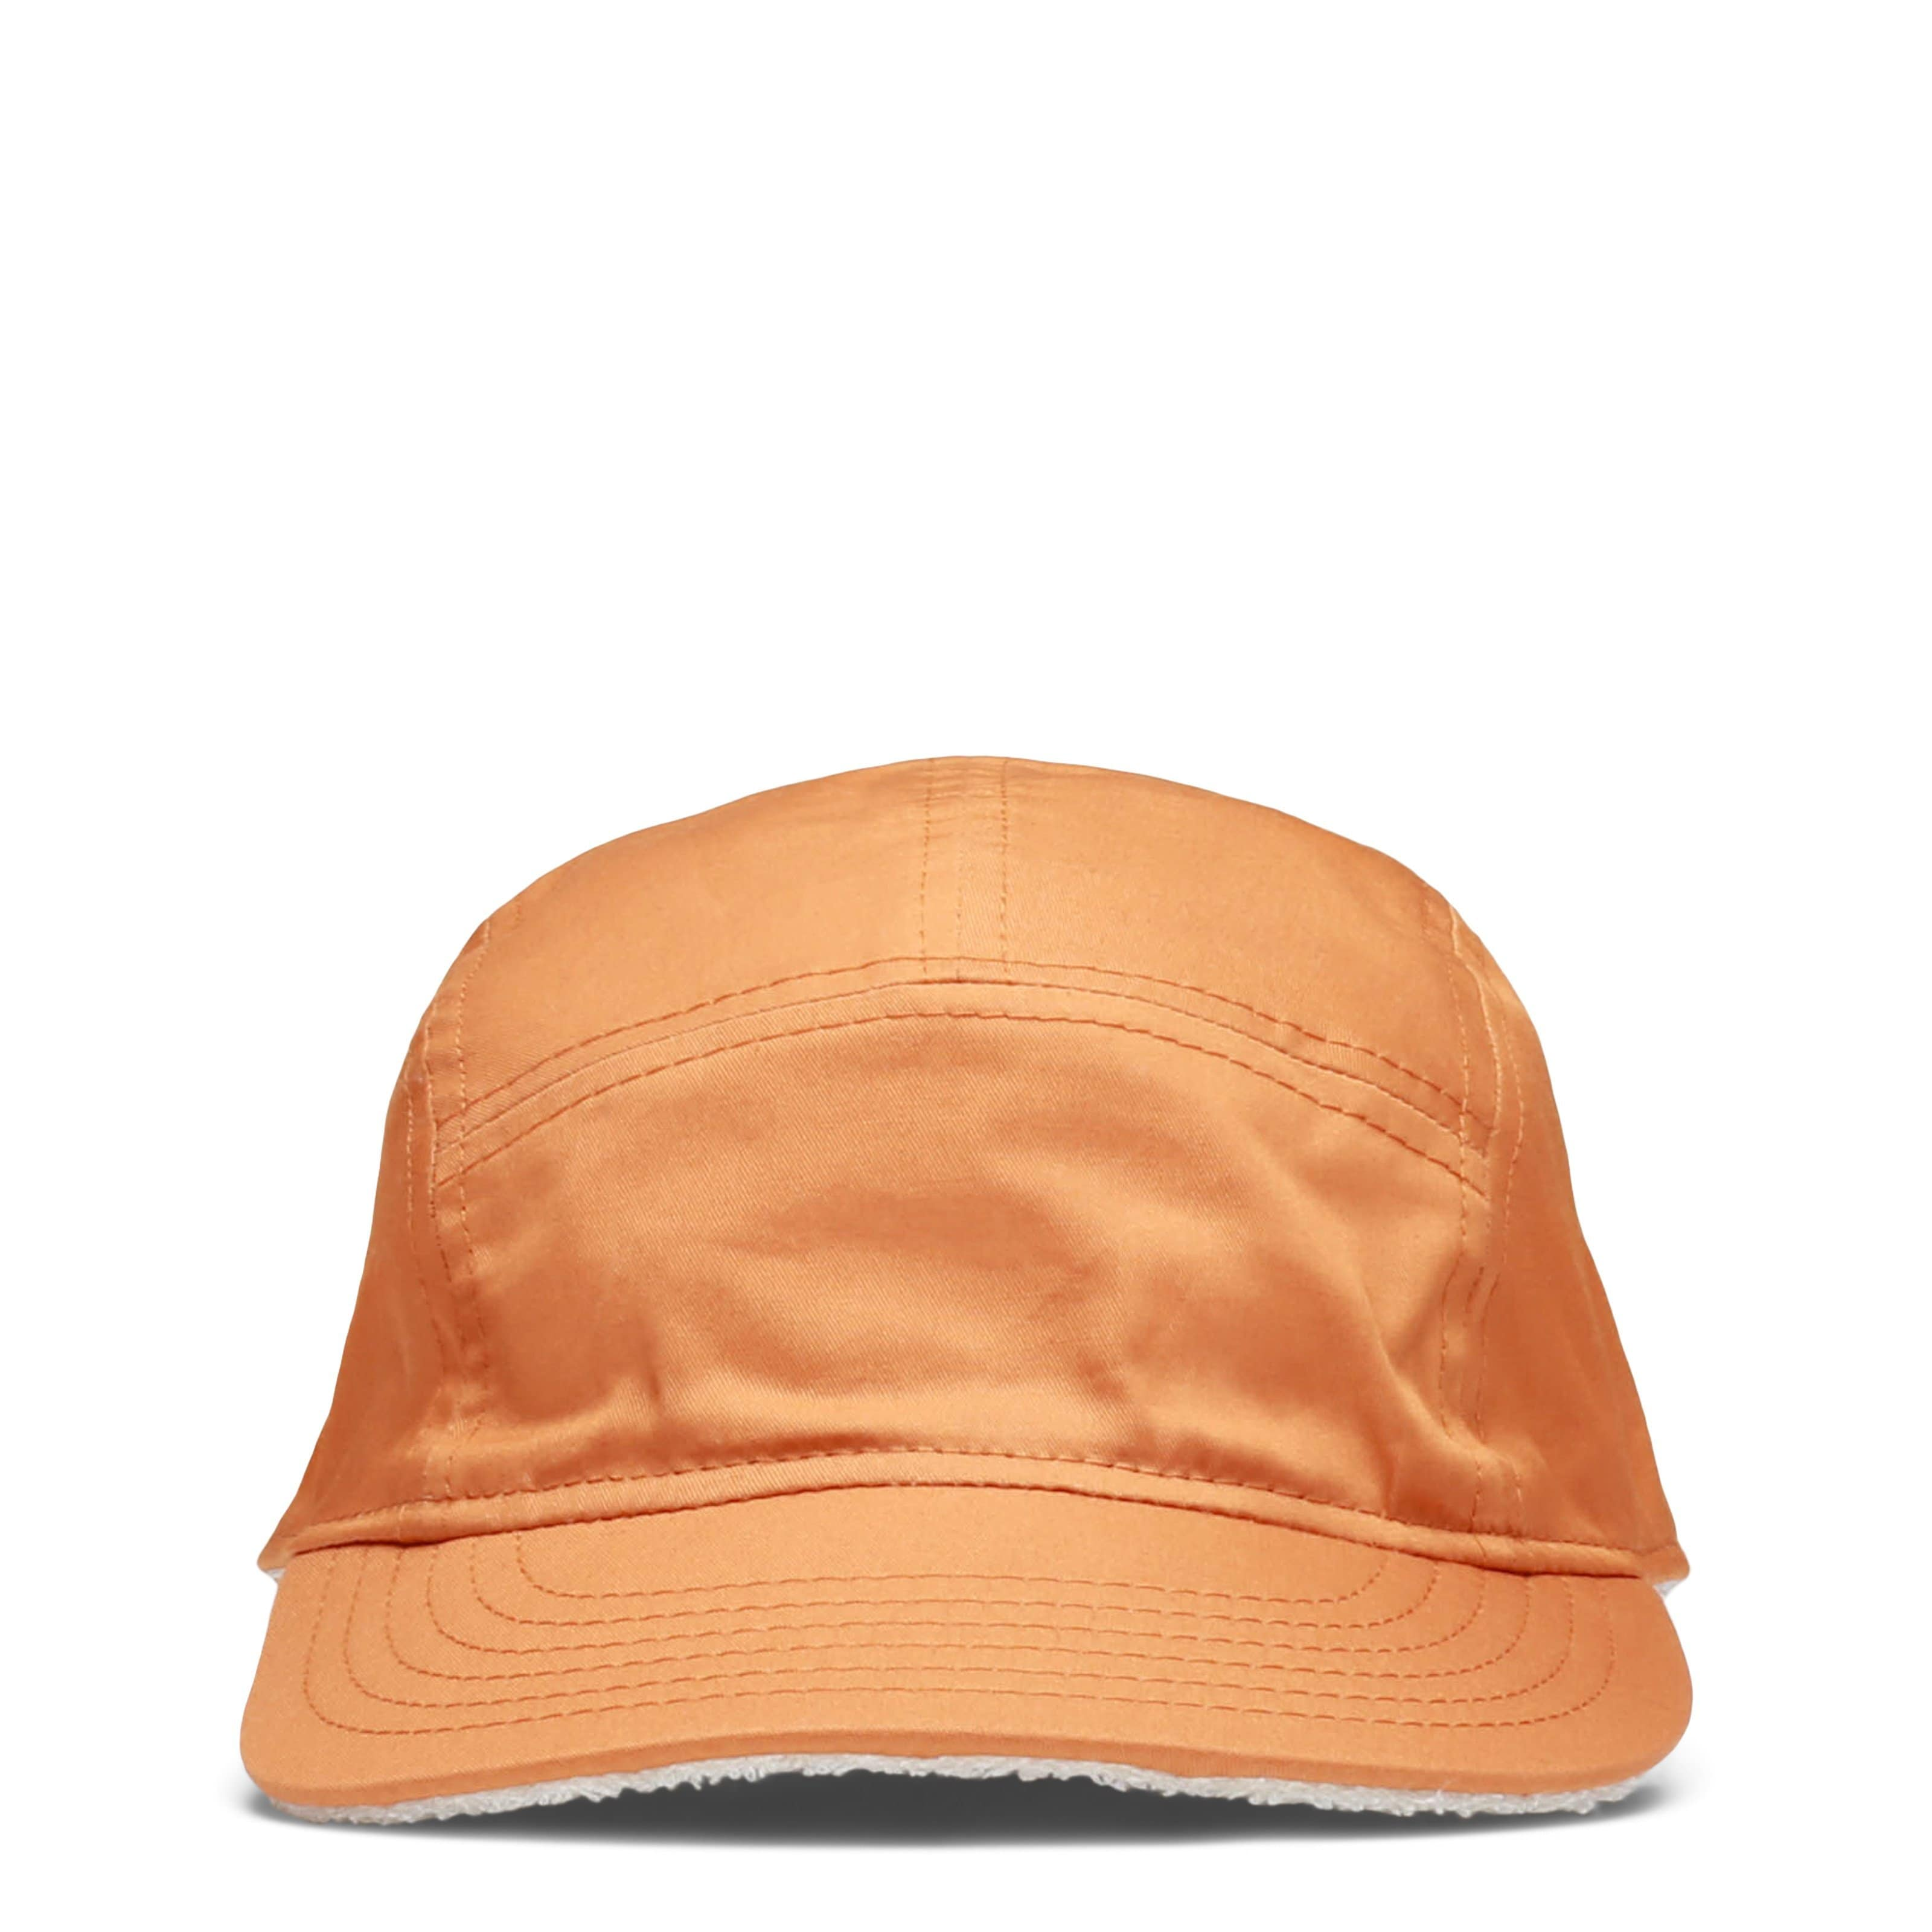 New Era Headwear ORANGE / O/S COTTON BOUCLE REVERSIBLE 5 PANEL